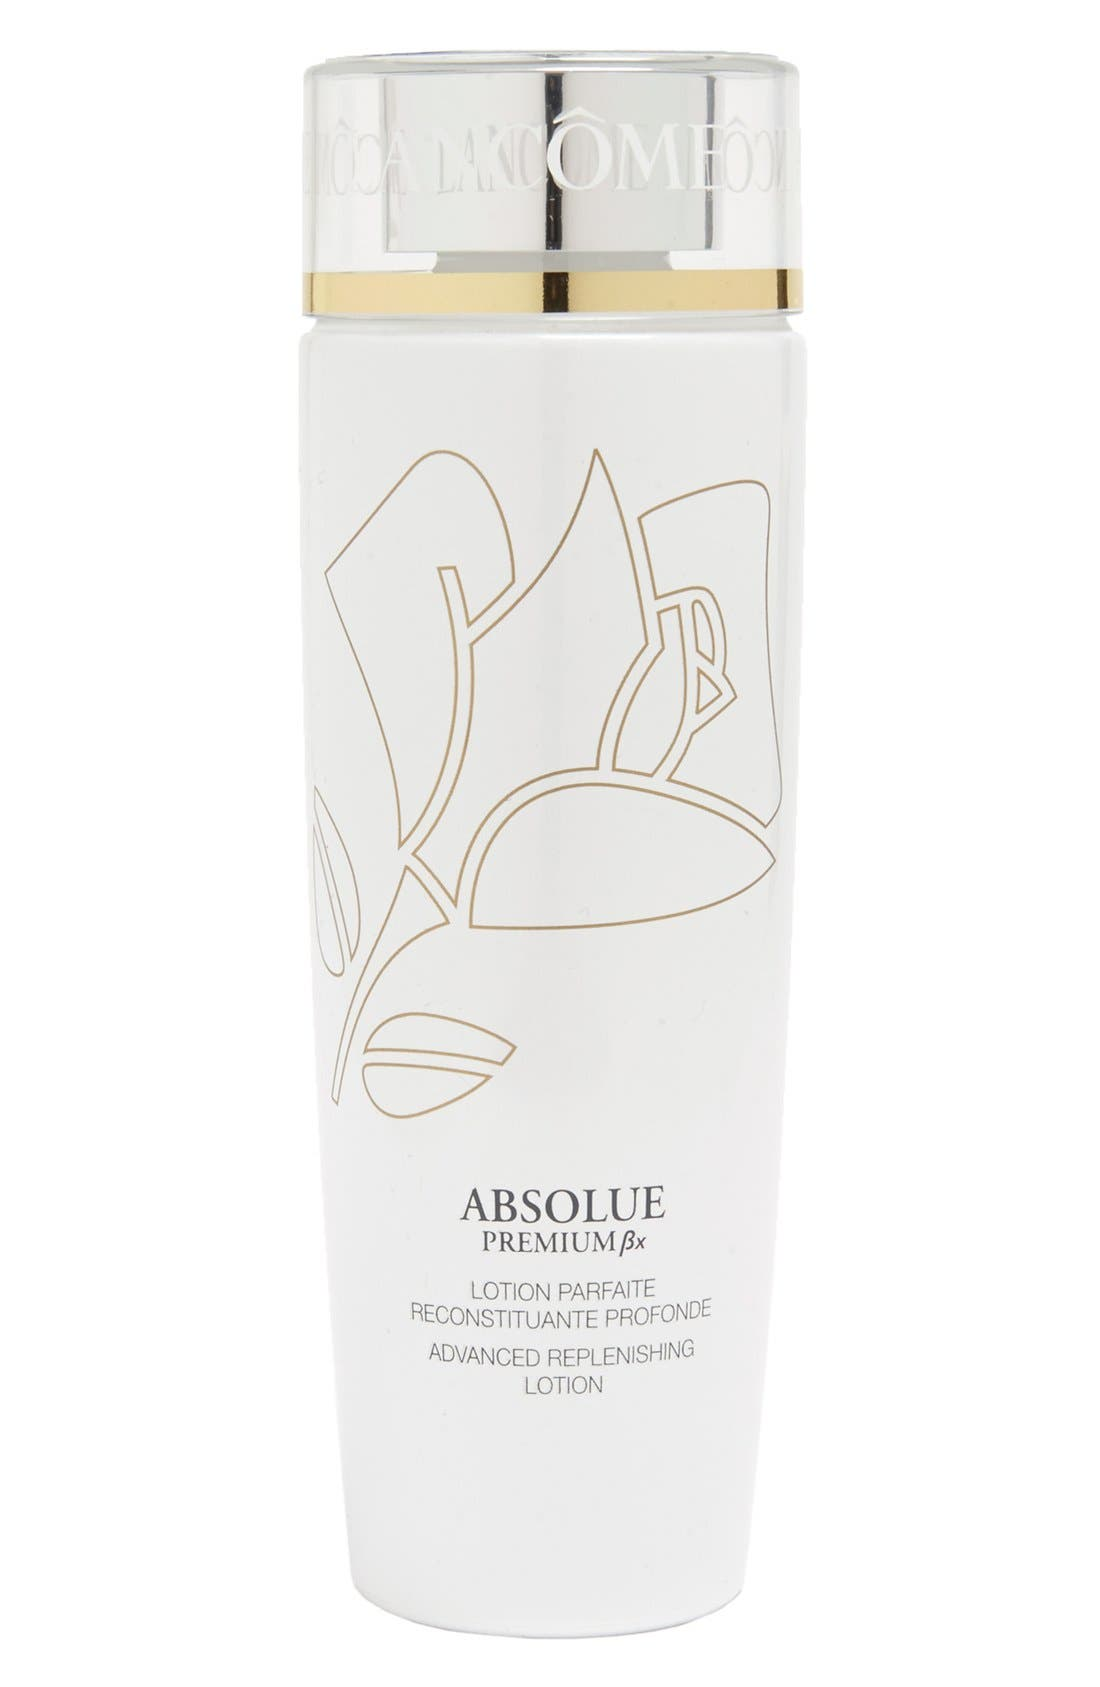 Lancôme Absolue Replenishing Lotion